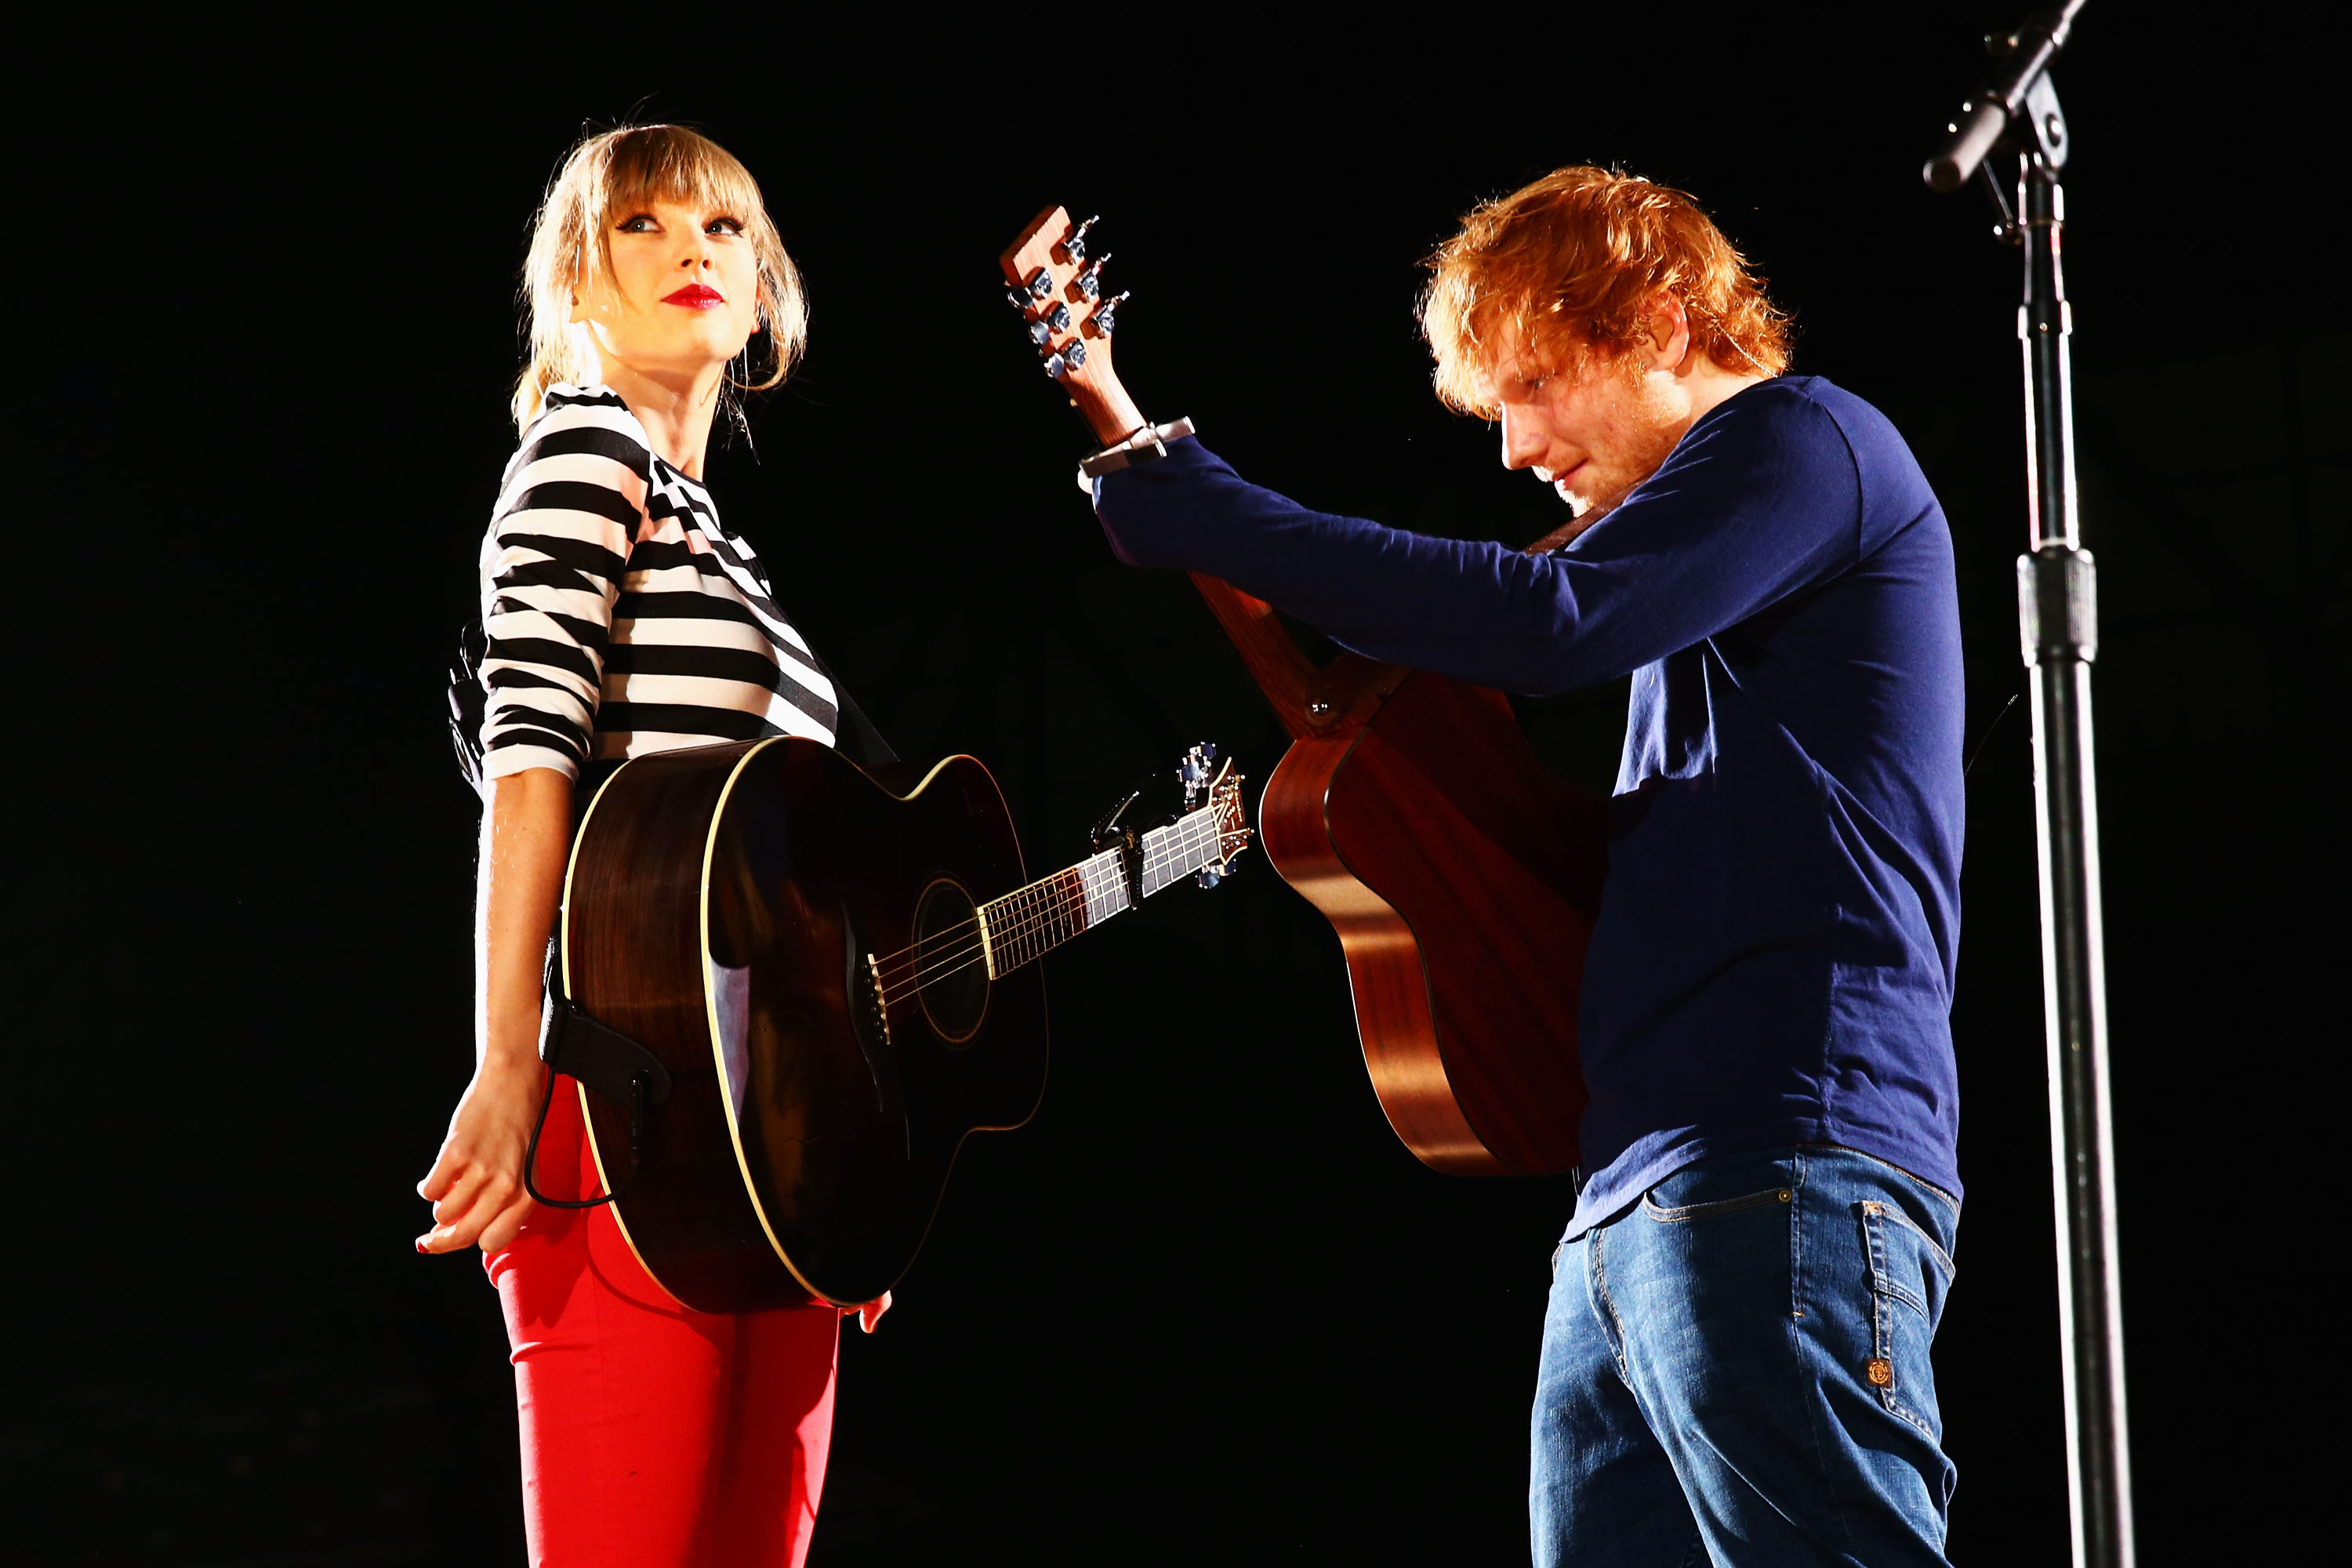 Taylor Swift and Ed Sheeran perform onstage at the first of 13 North American stadium dates on The RED Tour at Ford Field in front of a sold-out crowd of more than 48,000 fans on May 4, 2013 in Detroit, Michigan.